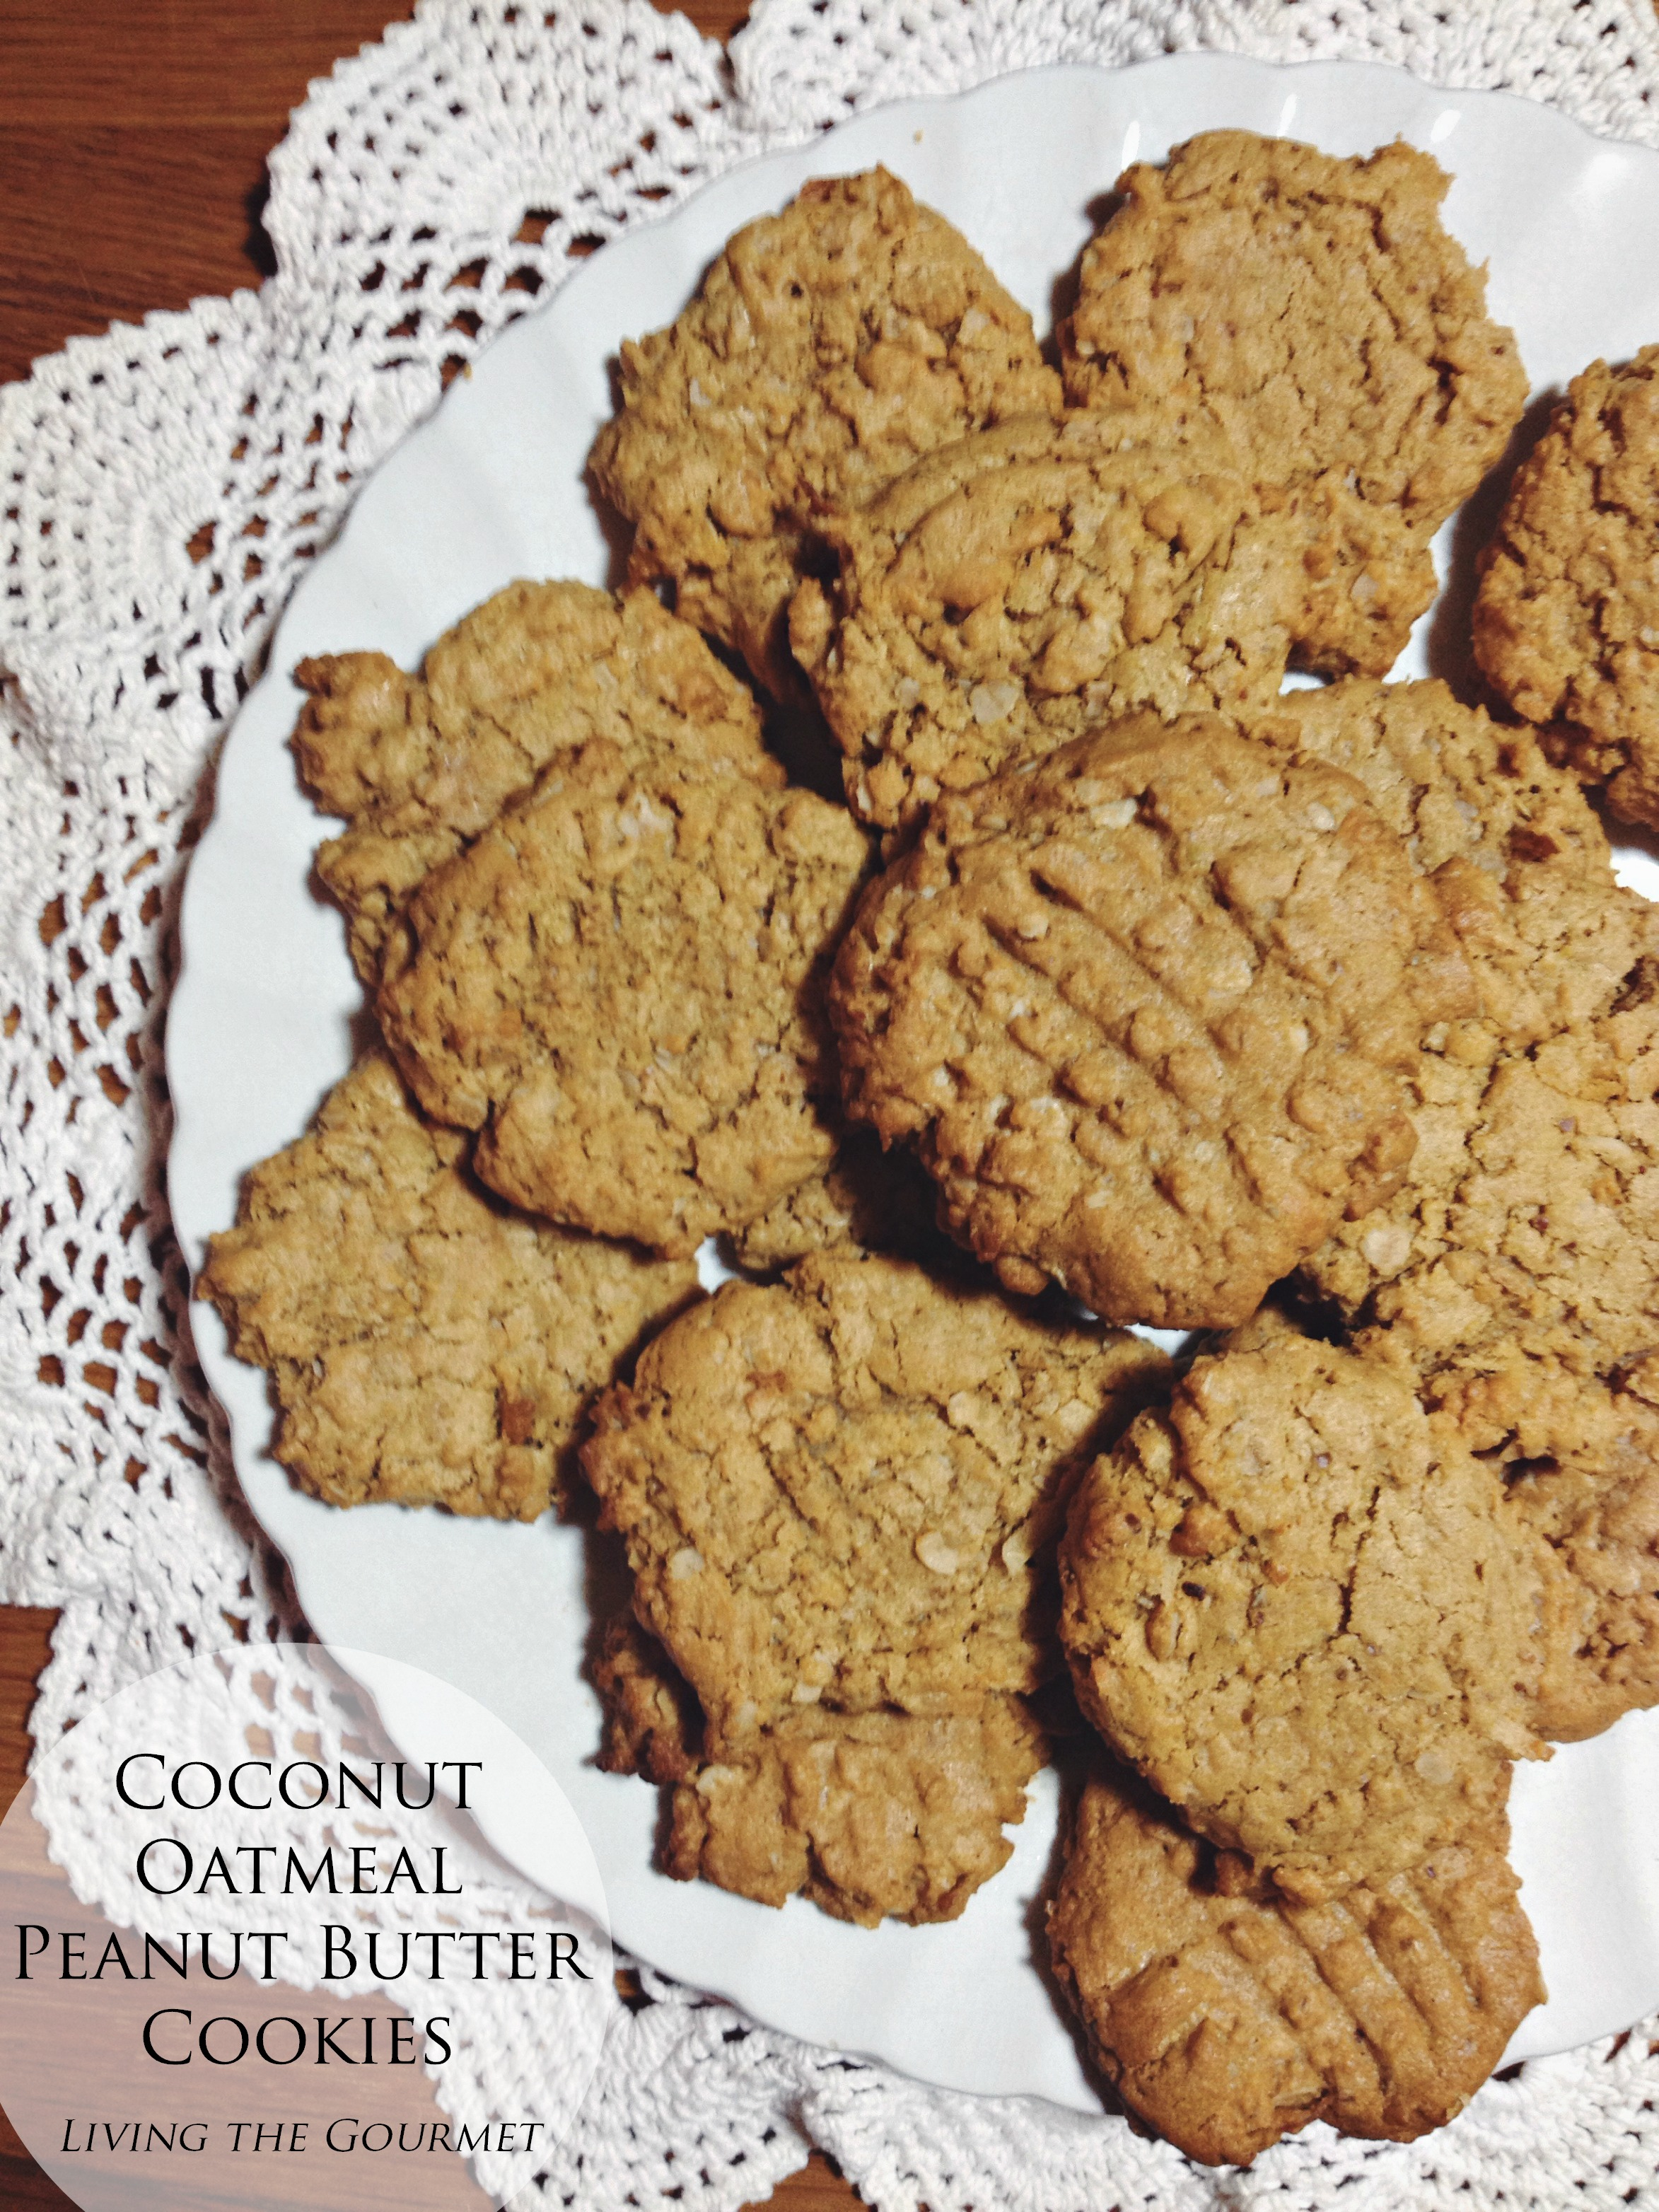 Living the Gourmet: Coconut Peanut Butter Cookies